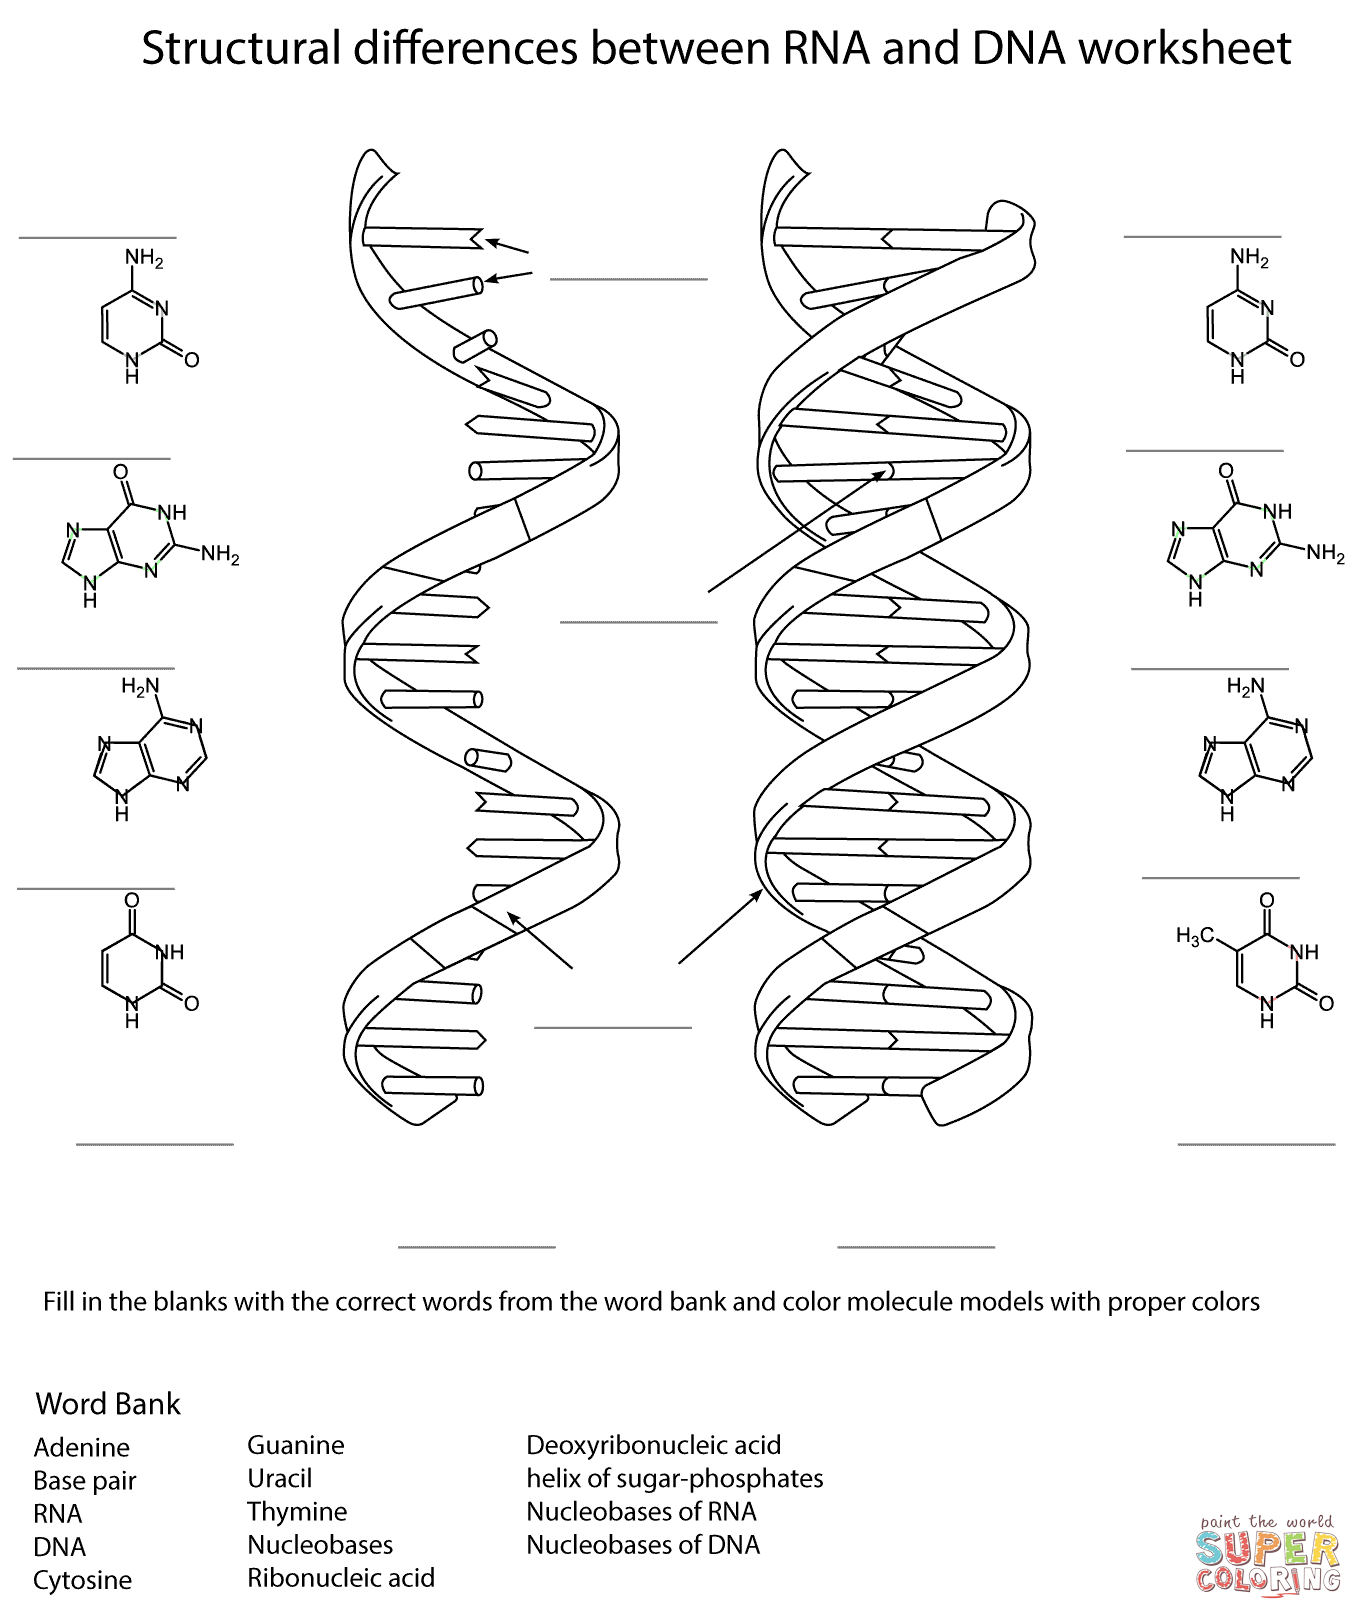 worksheet The Double Helix Coloring Worksheet worksheet dna double helix thedanks for everyone nucleic acids the answers resume worksheets wallpapercraft